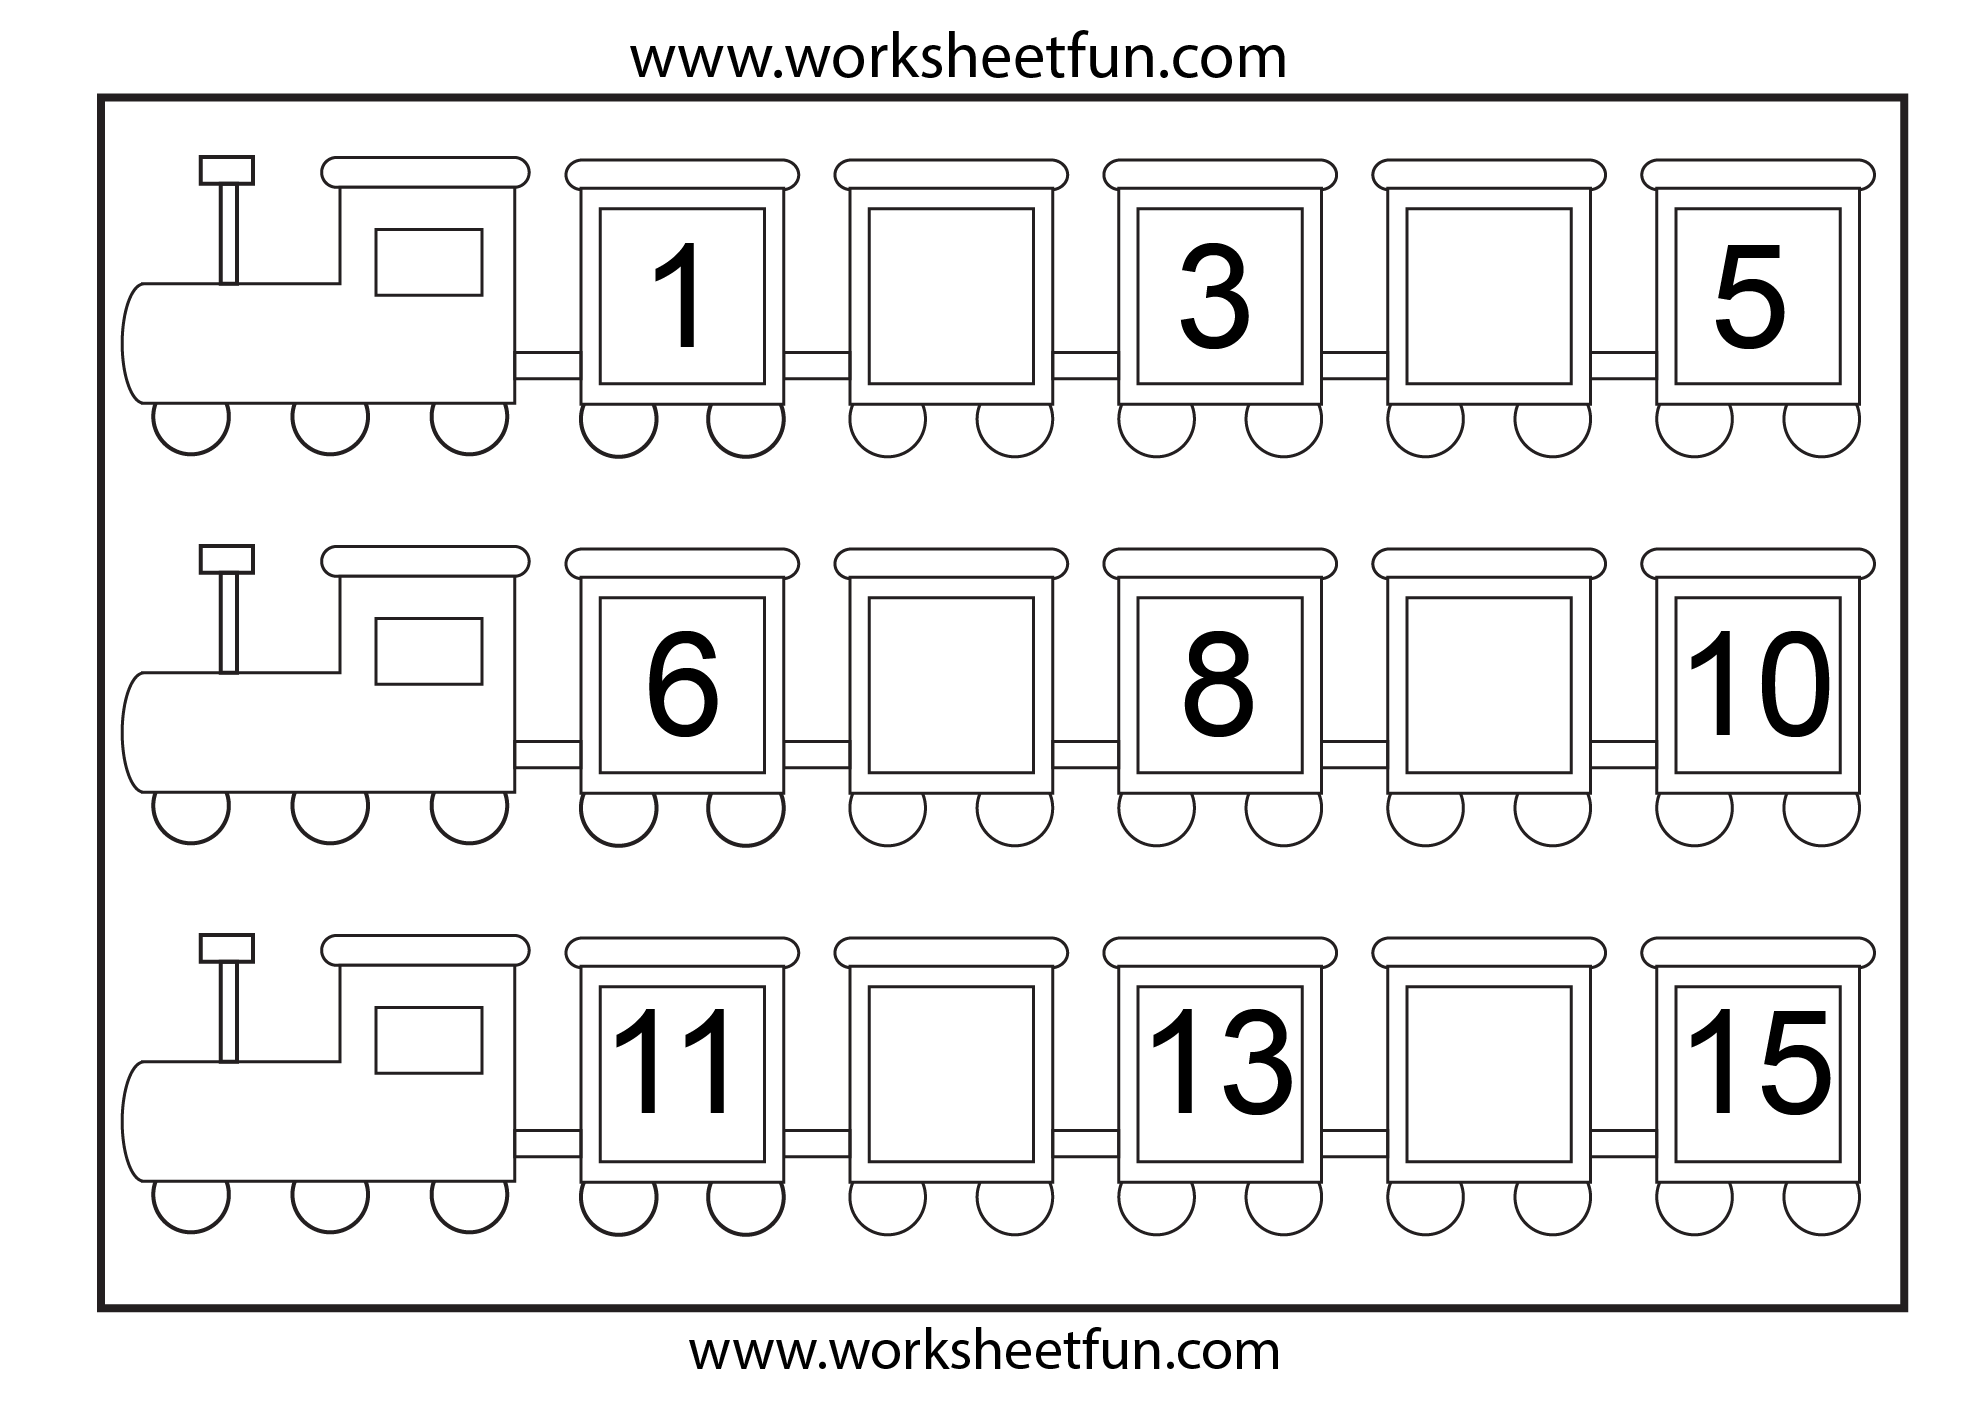 Worksheet Number Worksheets For Preschool Grass Fedjp Worksheet Study Site